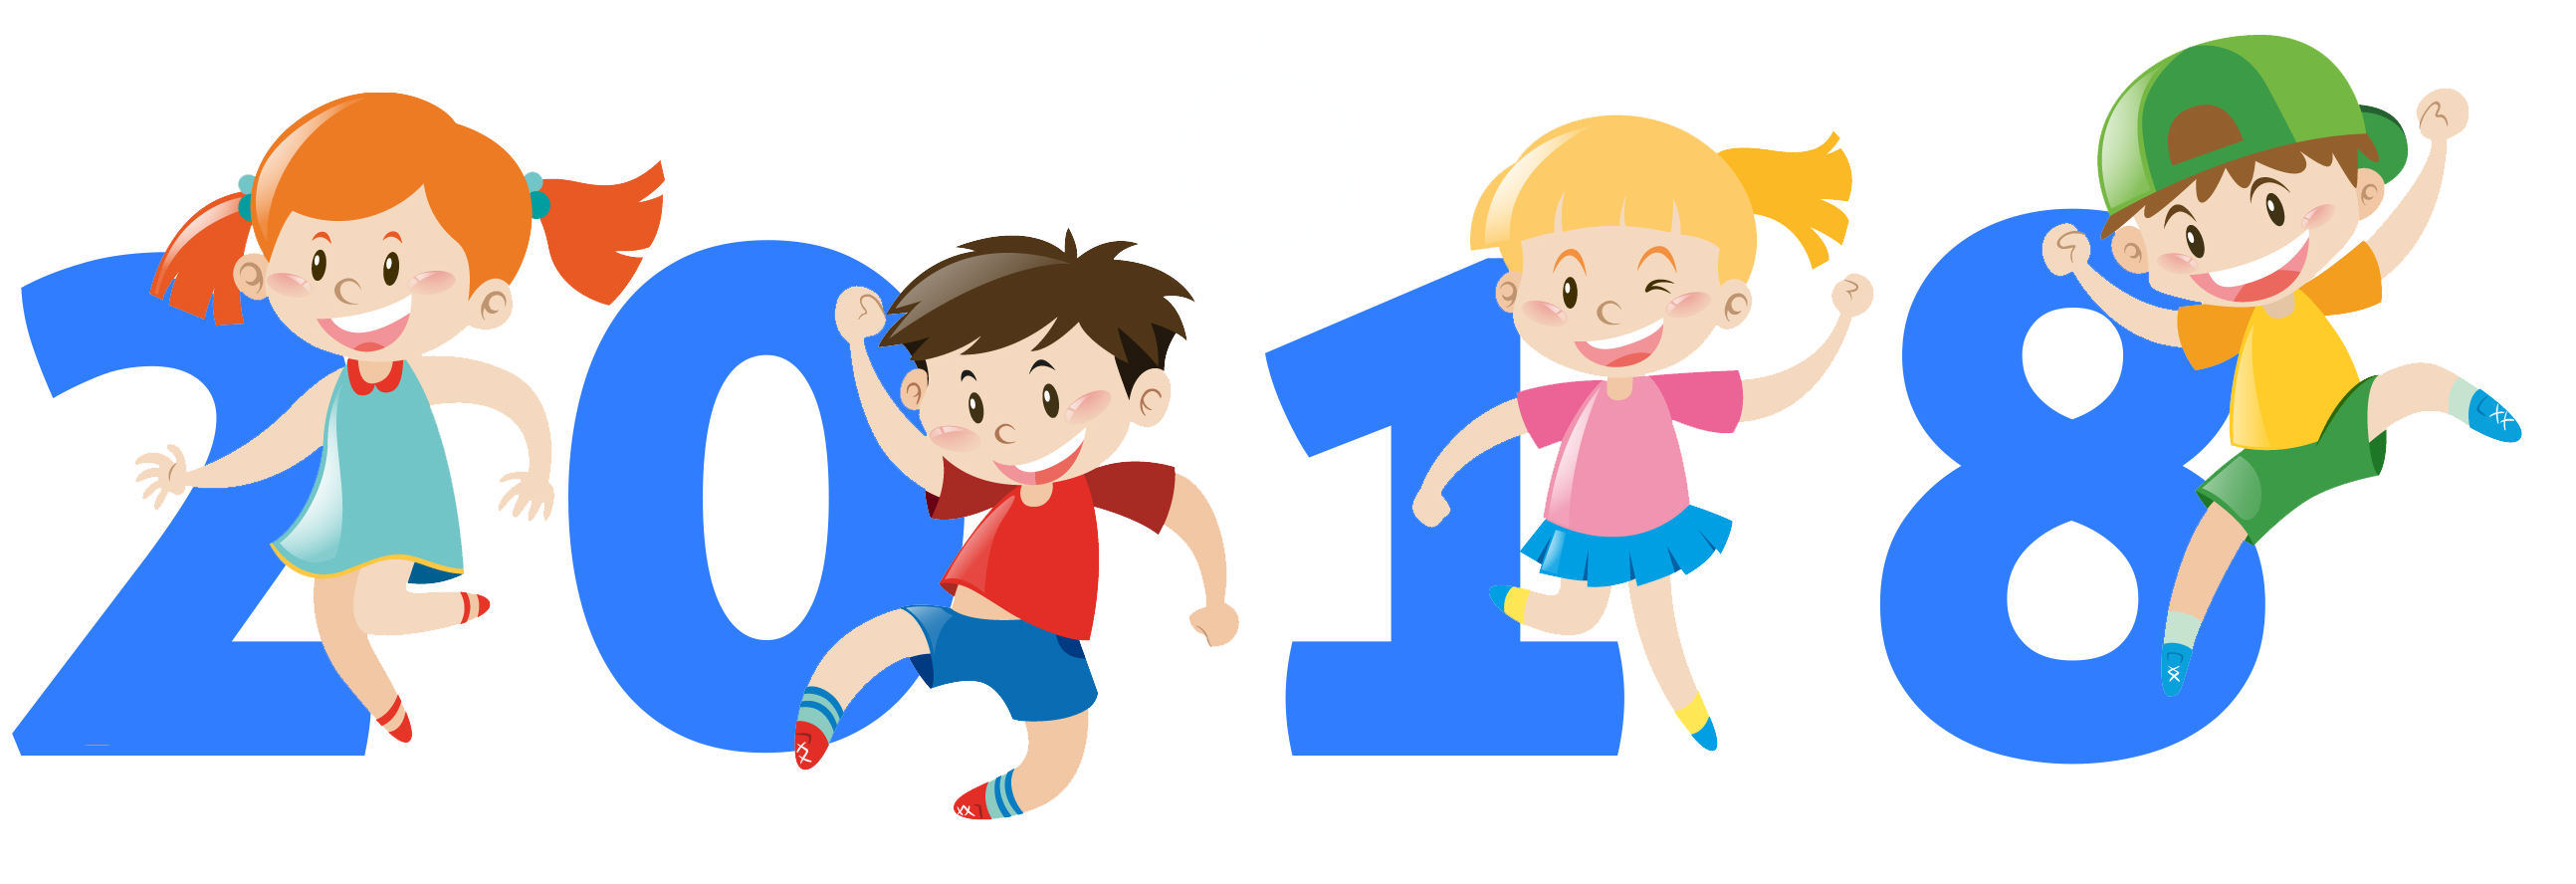 Year clipart. Happy new with kids png free library